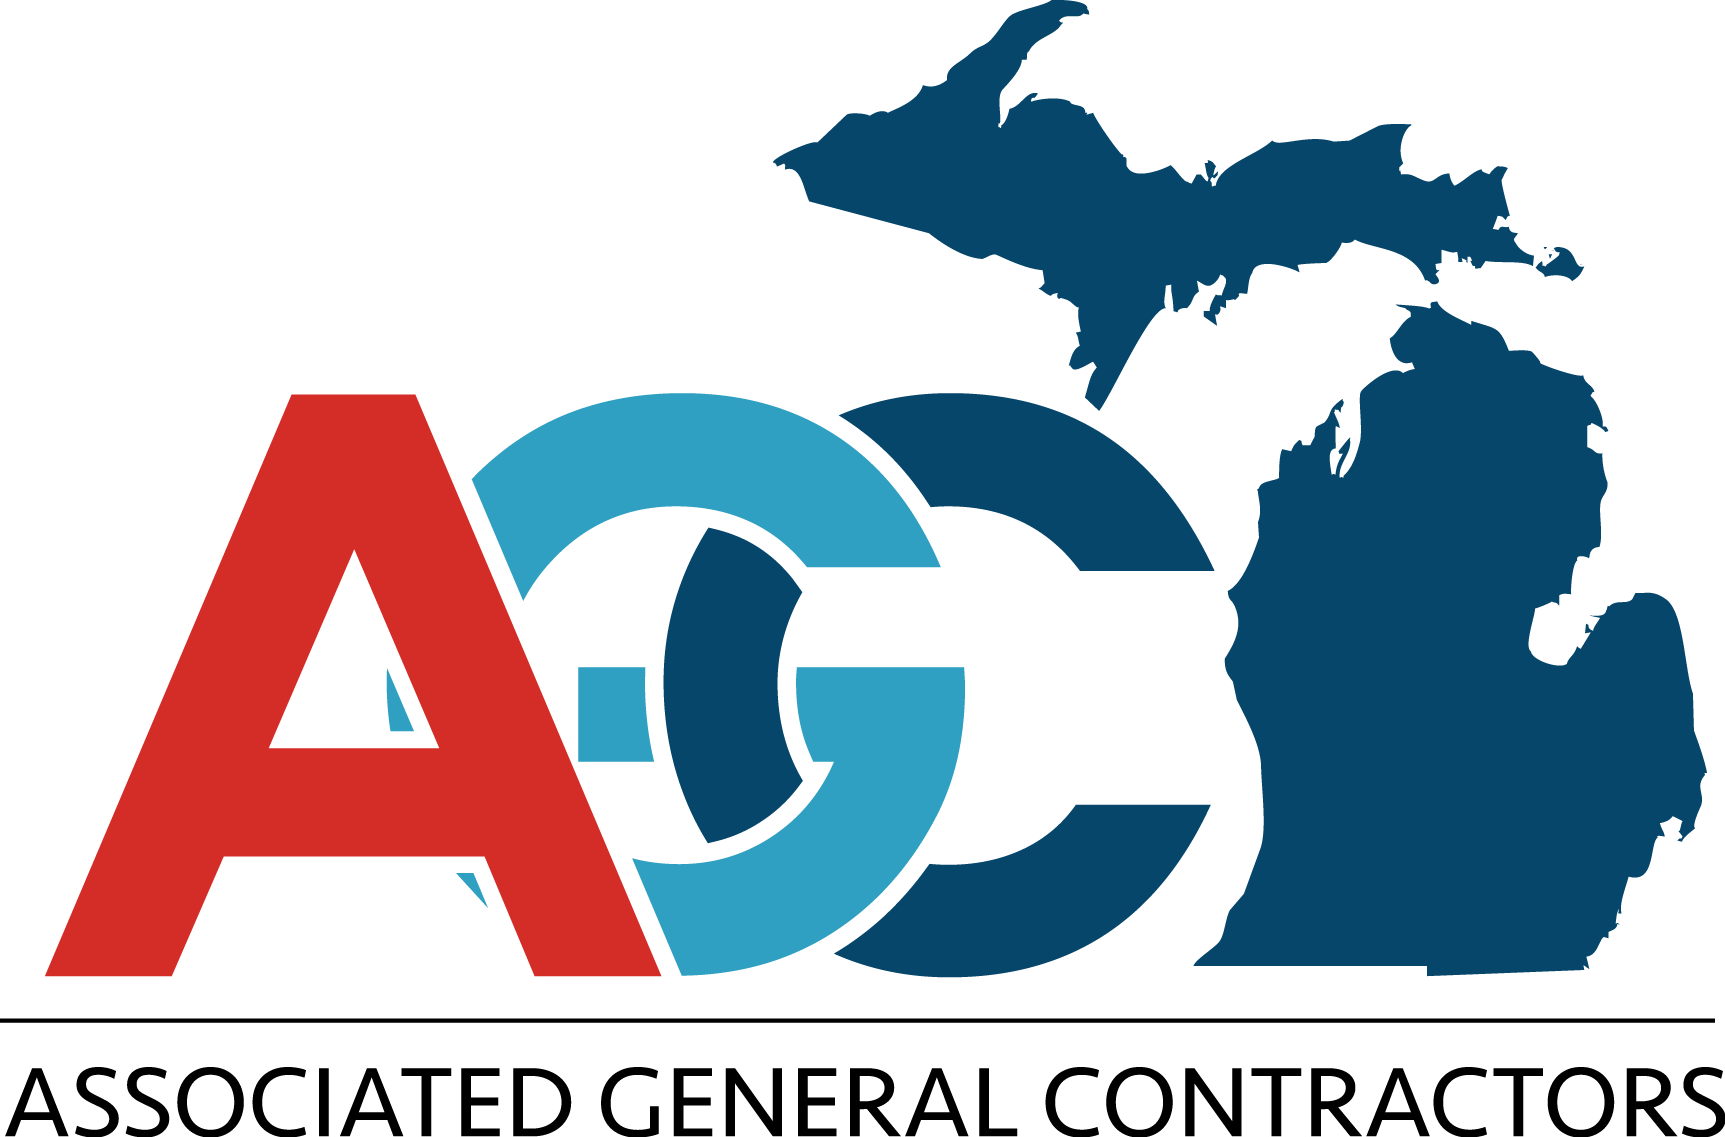 AGC (Associated General Contractors of Michigan)